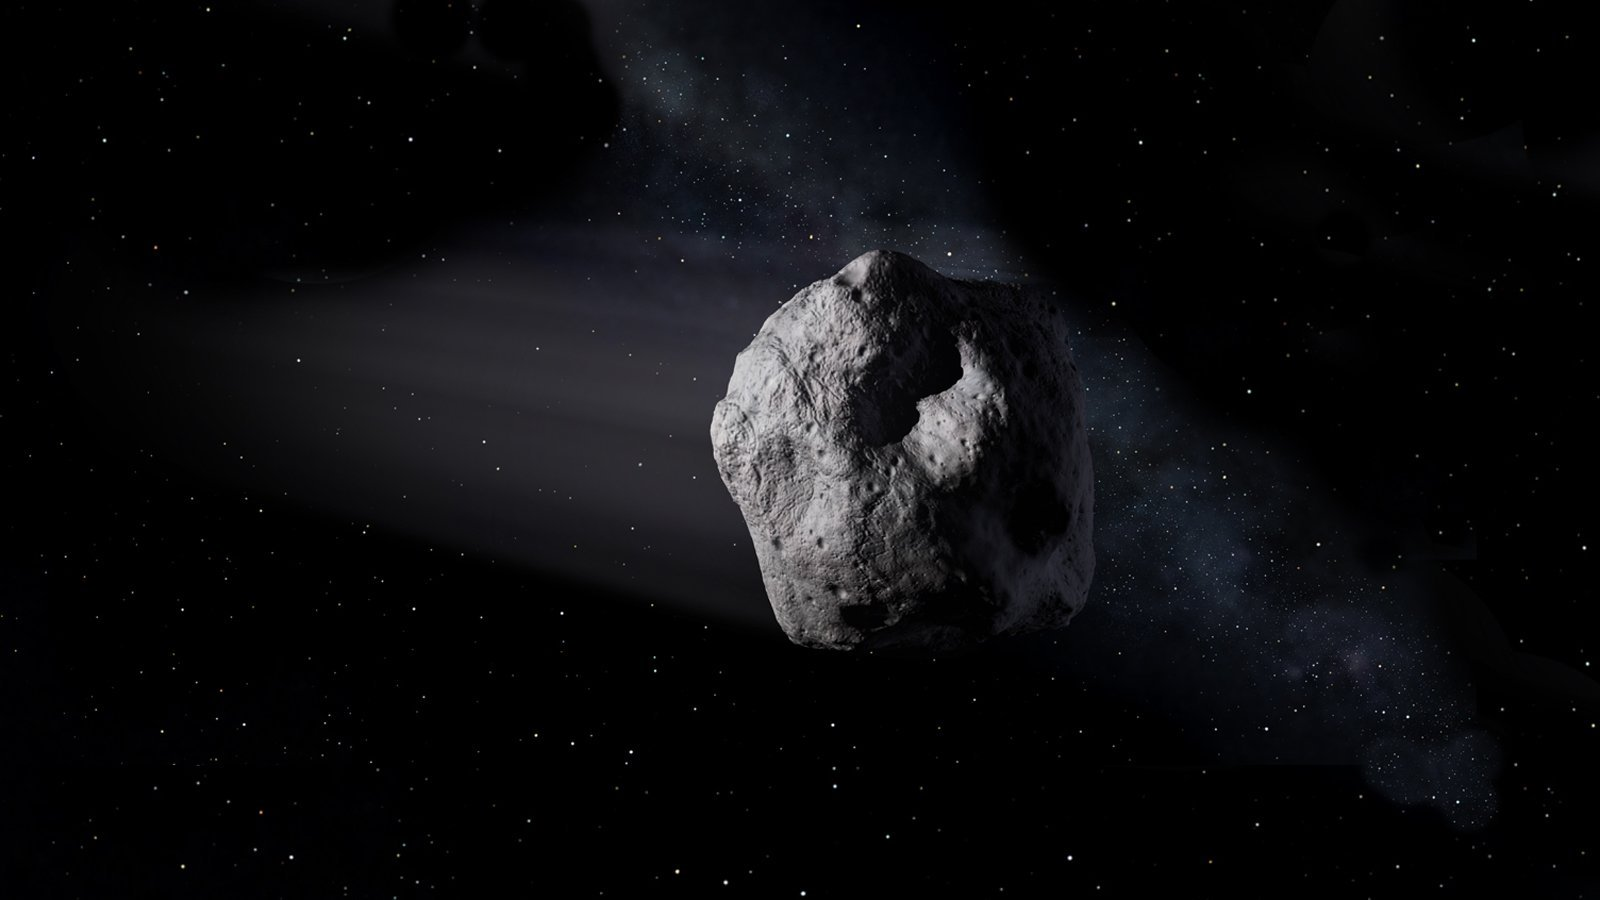 An asteroid larger than some of the world's tallest buildings will zip by Earth Saturday